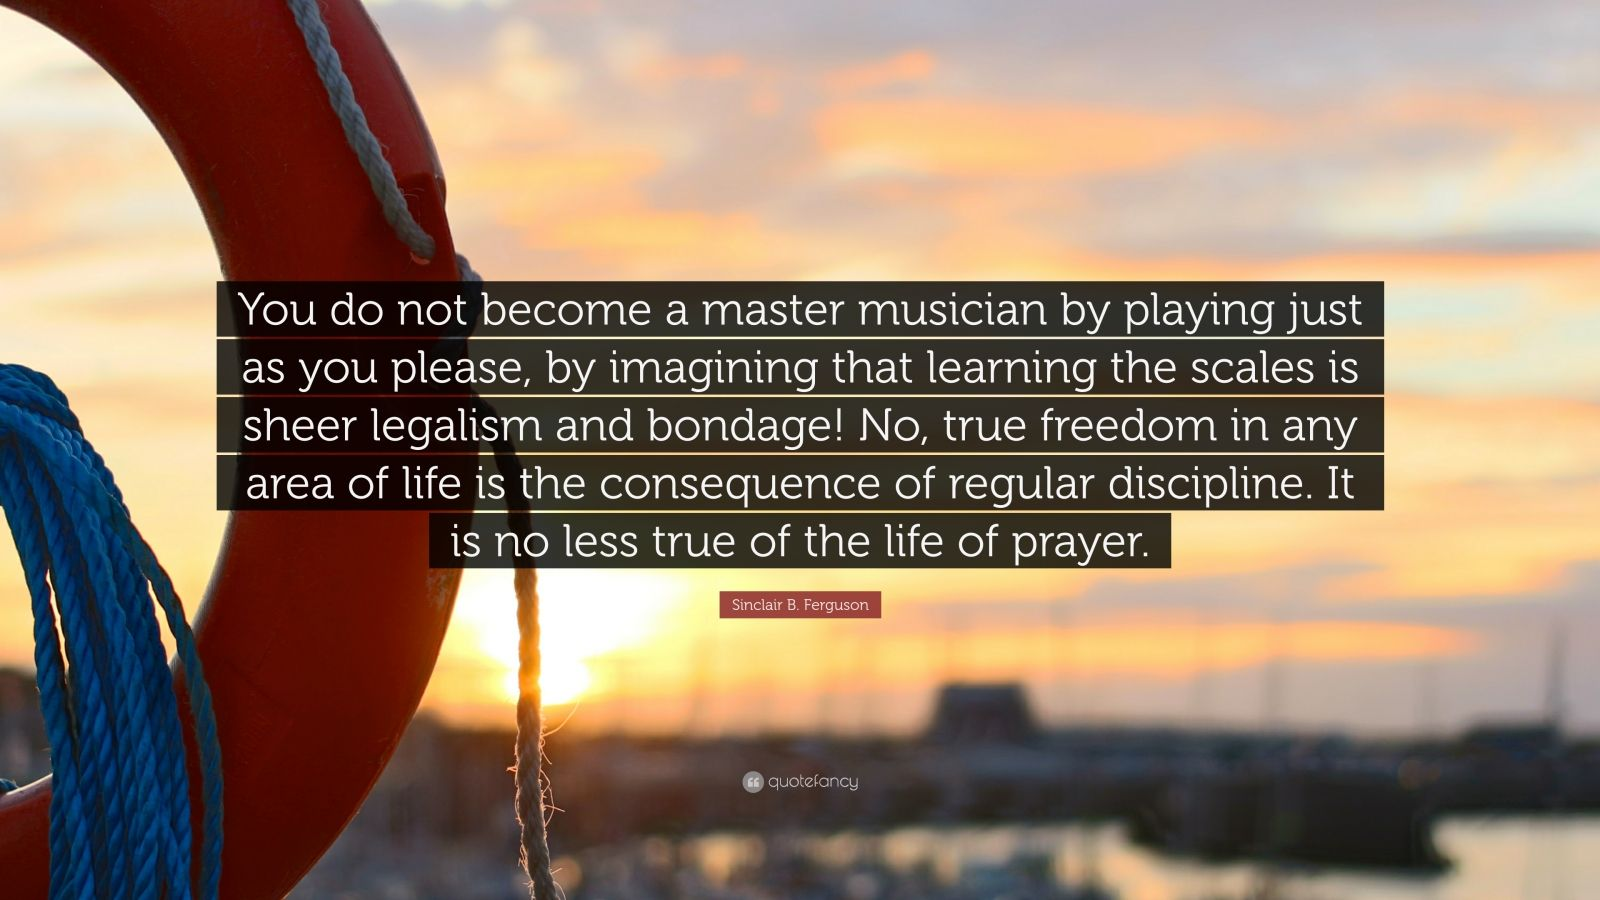 "Sinclair B. Ferguson Quote: ""You do not become a master musician by playing just as you please, by imagining that learning the scales is sheer legalism and bondage! No, true freedom in any area of life is the consequence of regular discipline. It is no less true of the life of prayer."""